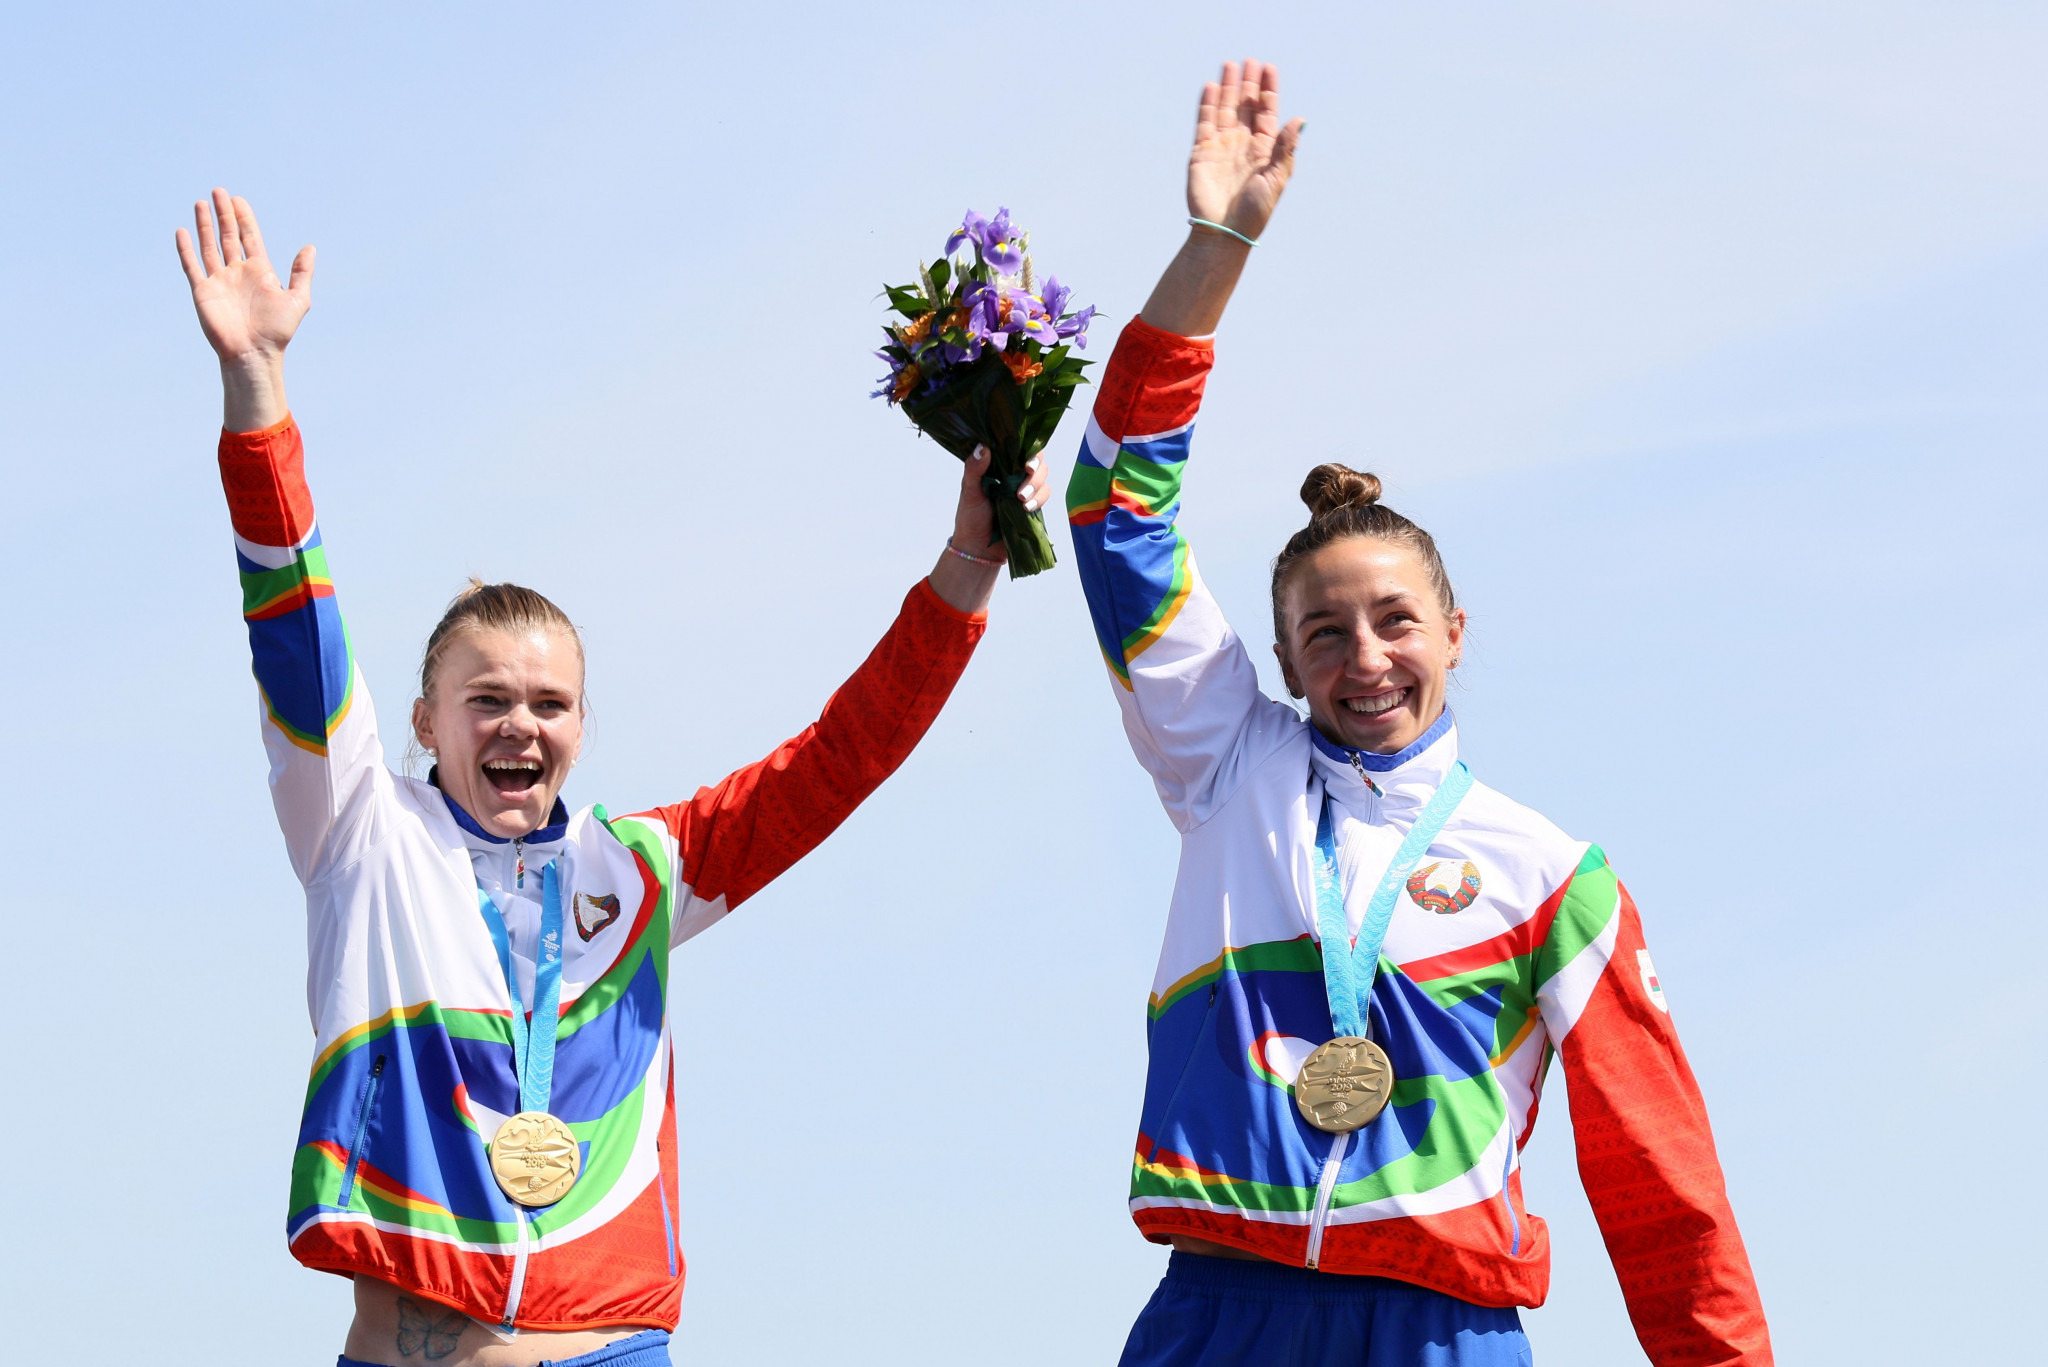 Belarus K2 500m canoe sprint pair beat Hungary's world champions to gold at Minsk 2019